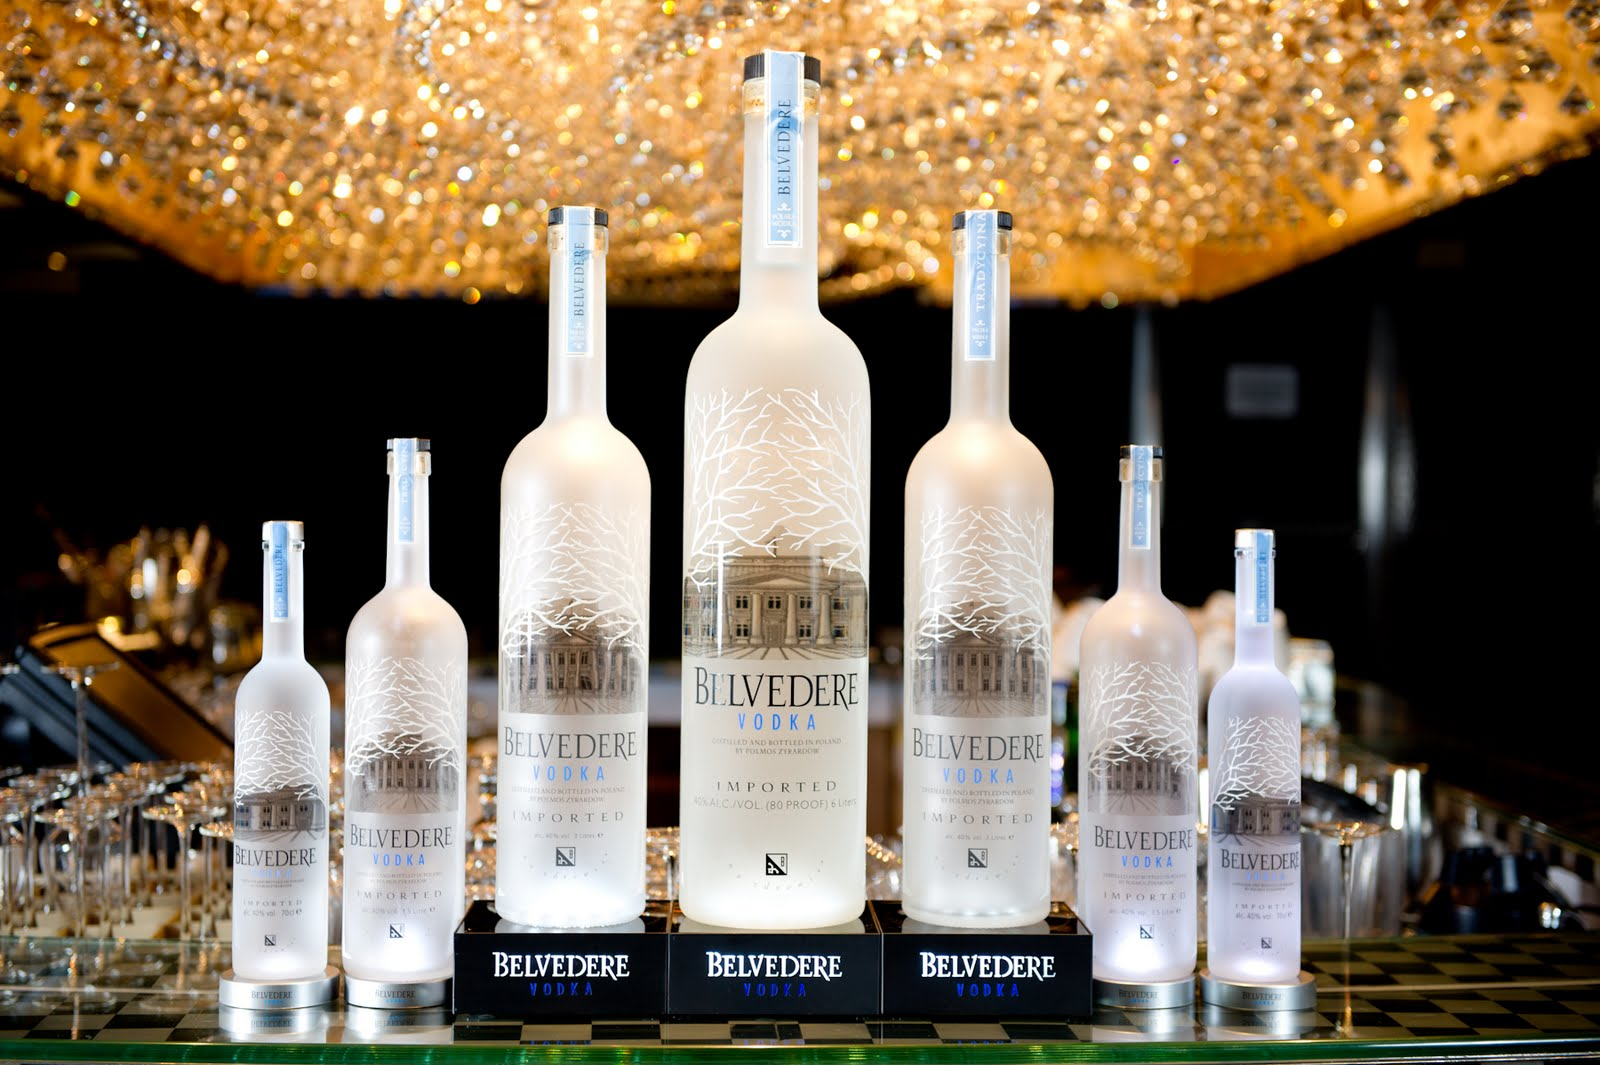 Belvedere Vodka Retracts Offensive Ad, Flubs Apology